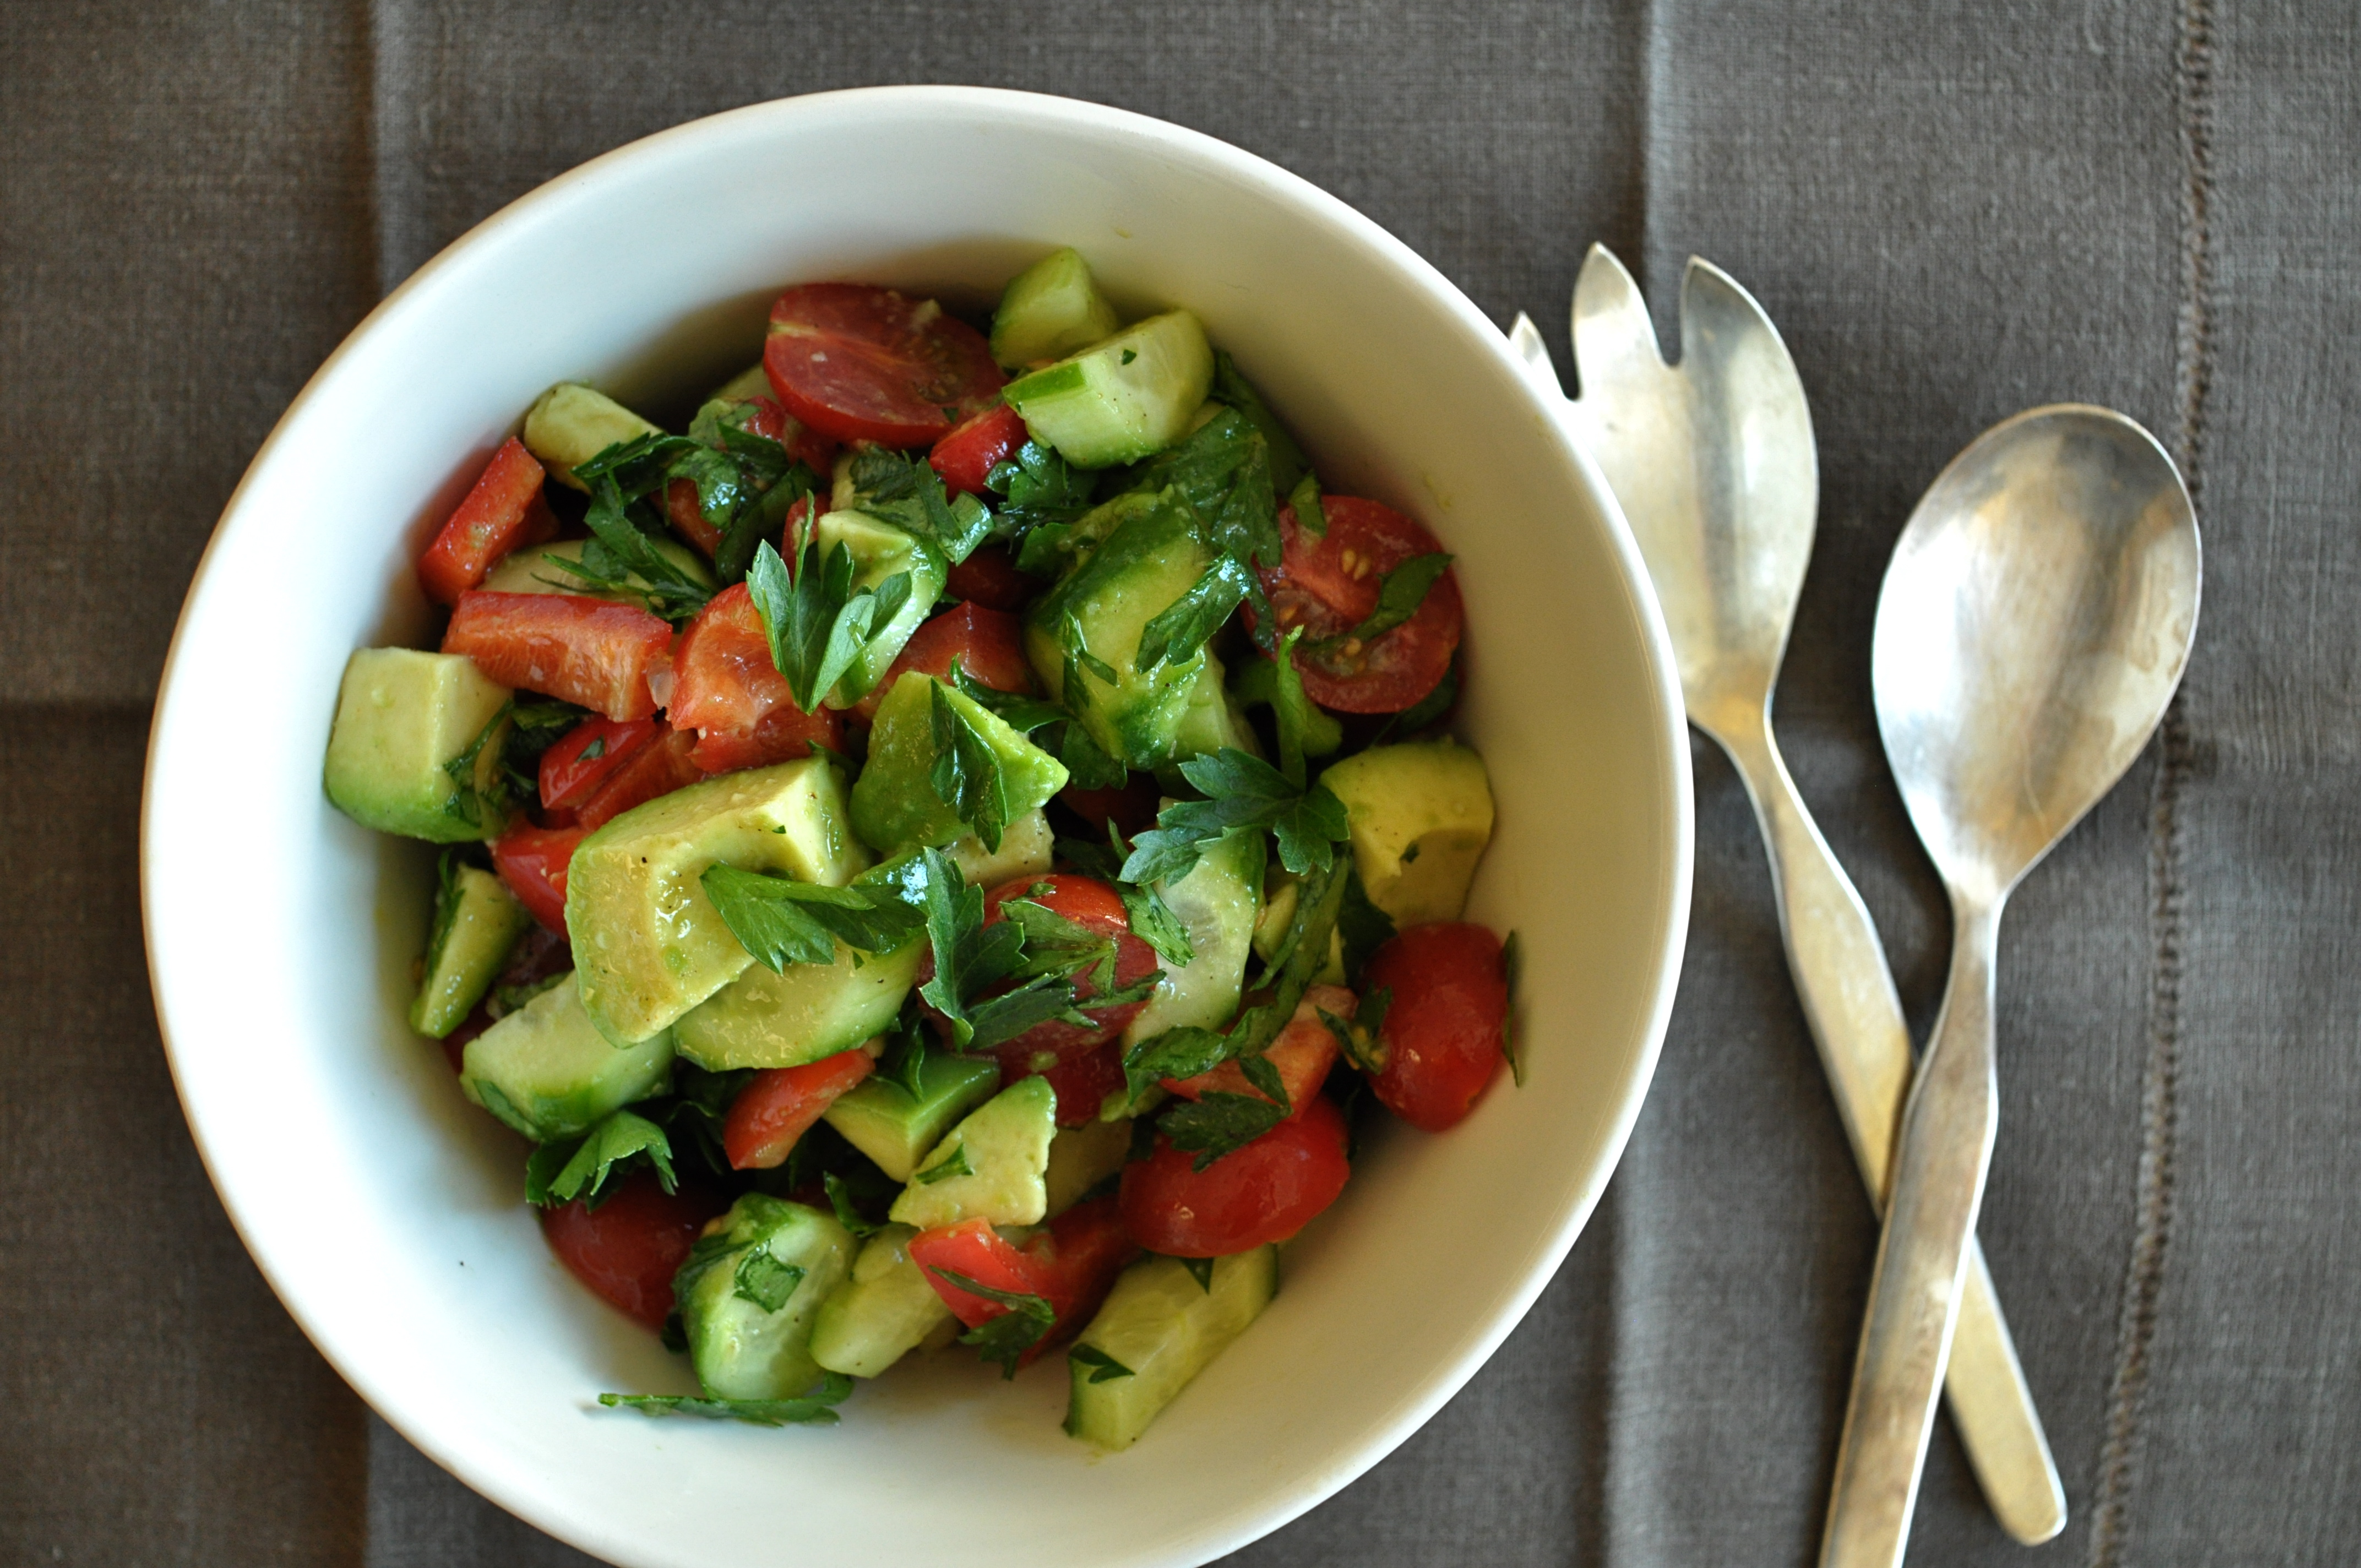 Avocado, cherry tomato, and cucumber salad with red pepper and parsley ...